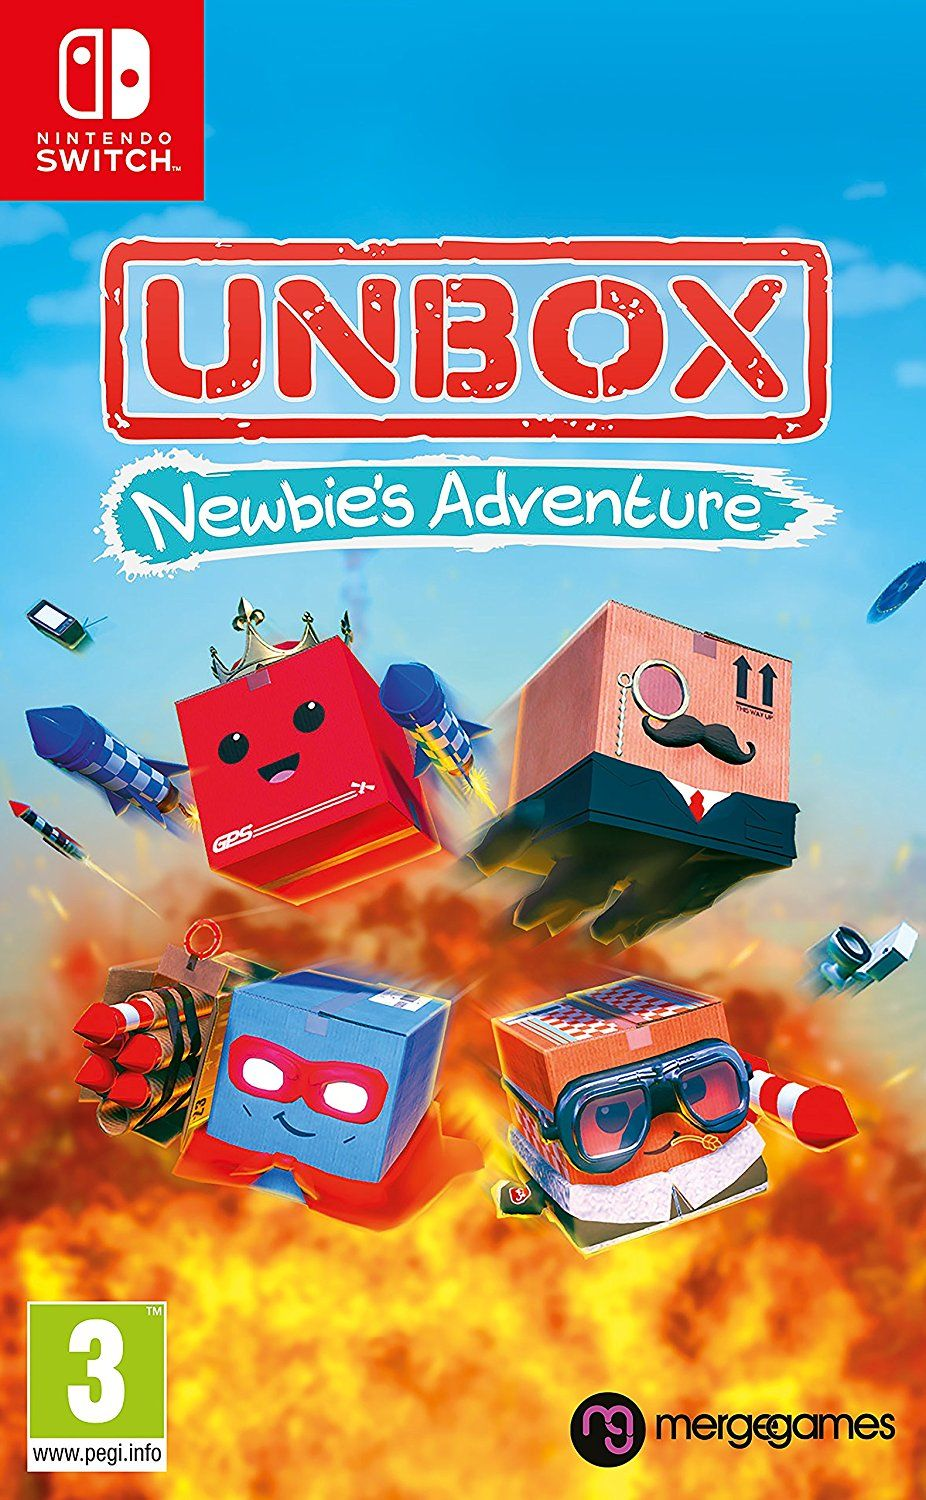 Unbox: Newbies Adventure (Nintendo Switch) - 1